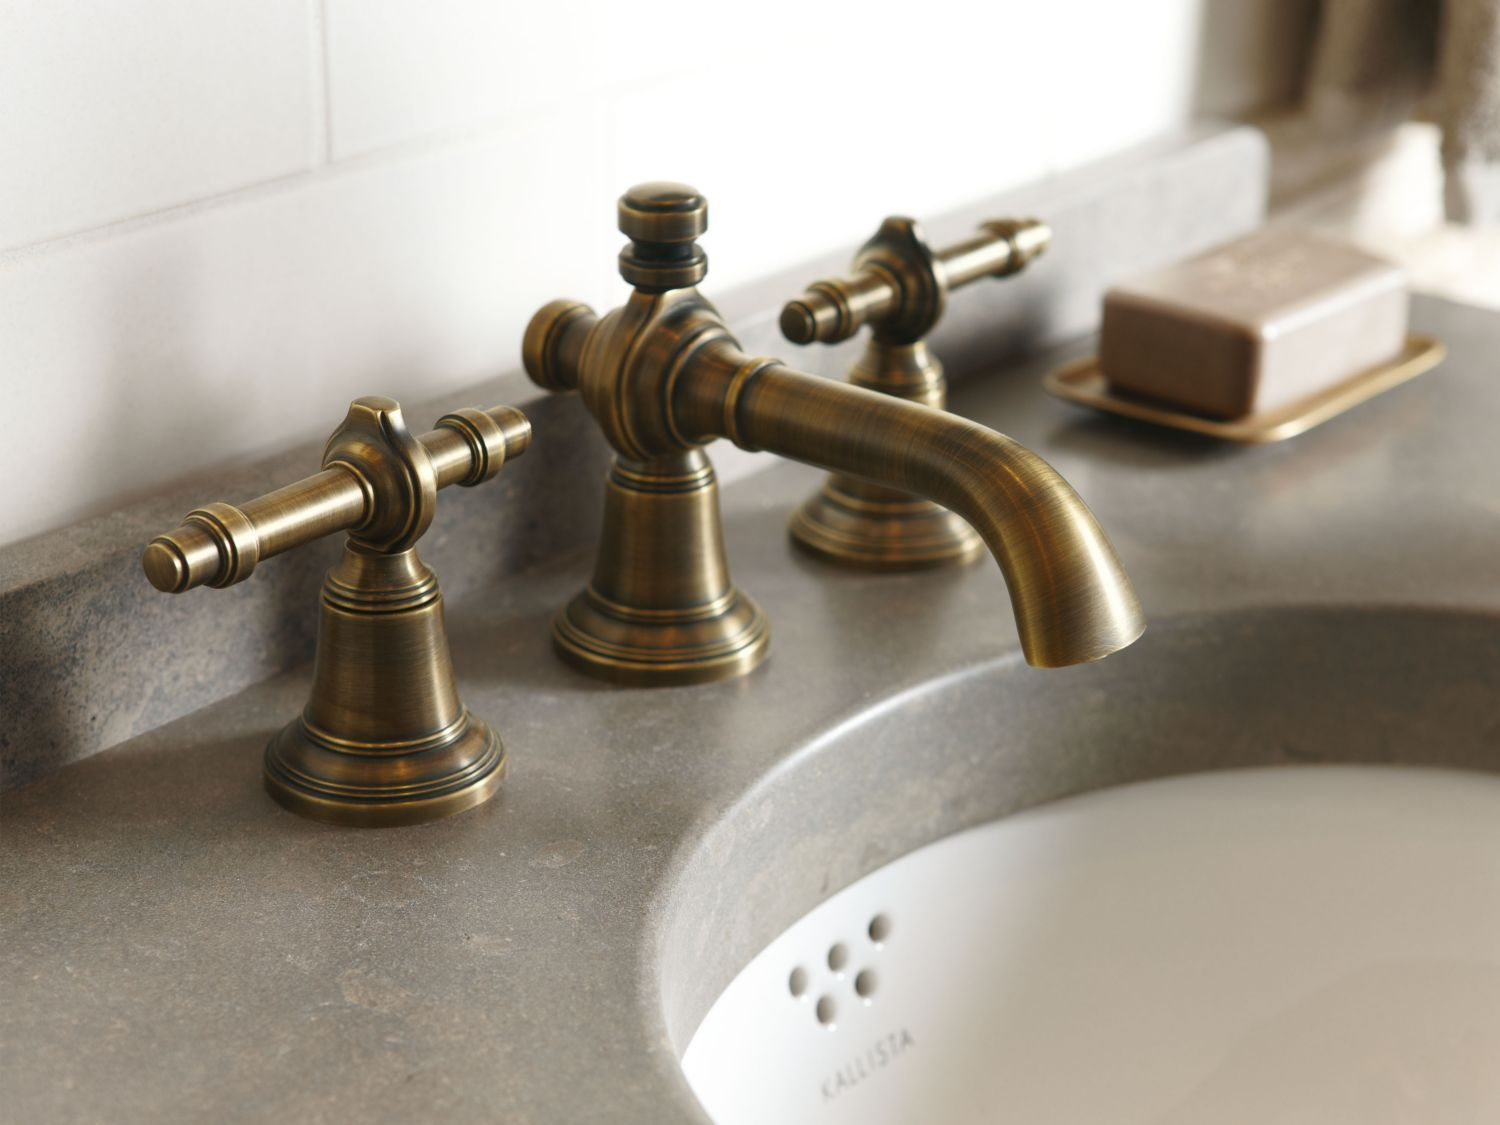 Sink Faucet, Lever Handles | Faucet, Sinks and Bath ideas